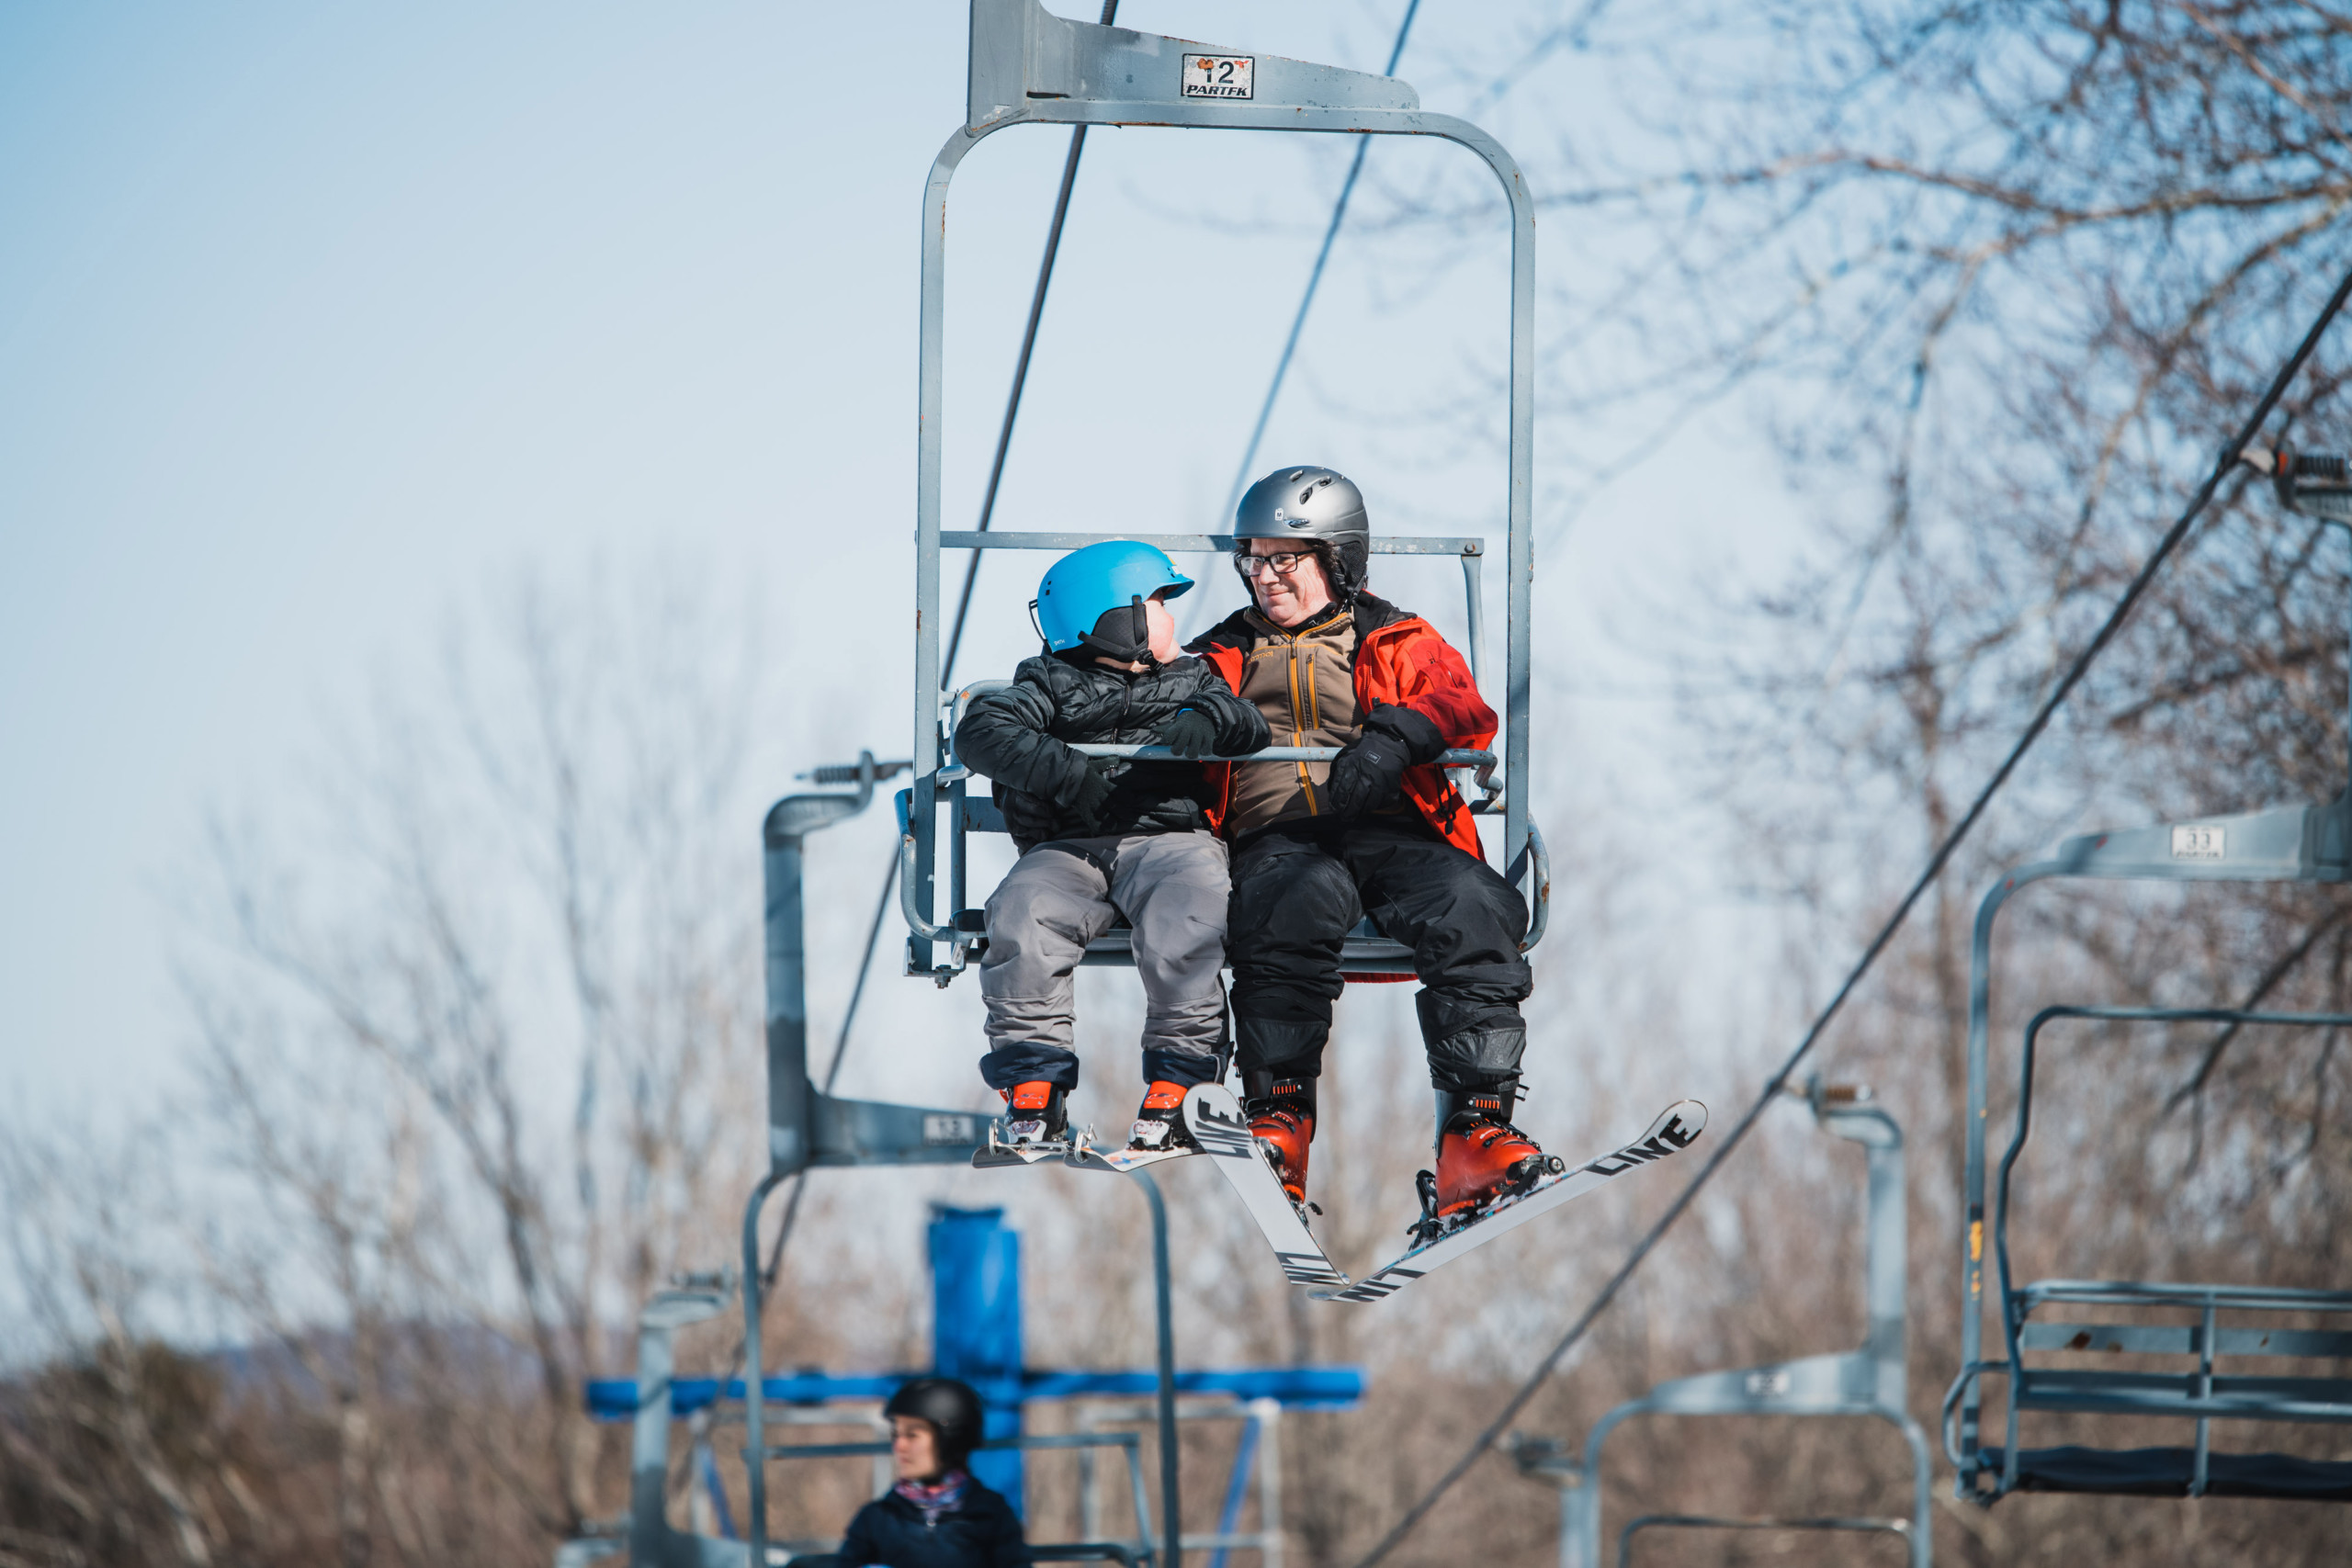 Ryan rides the chairlift with one of his instructors in the Skiers Unlimited program